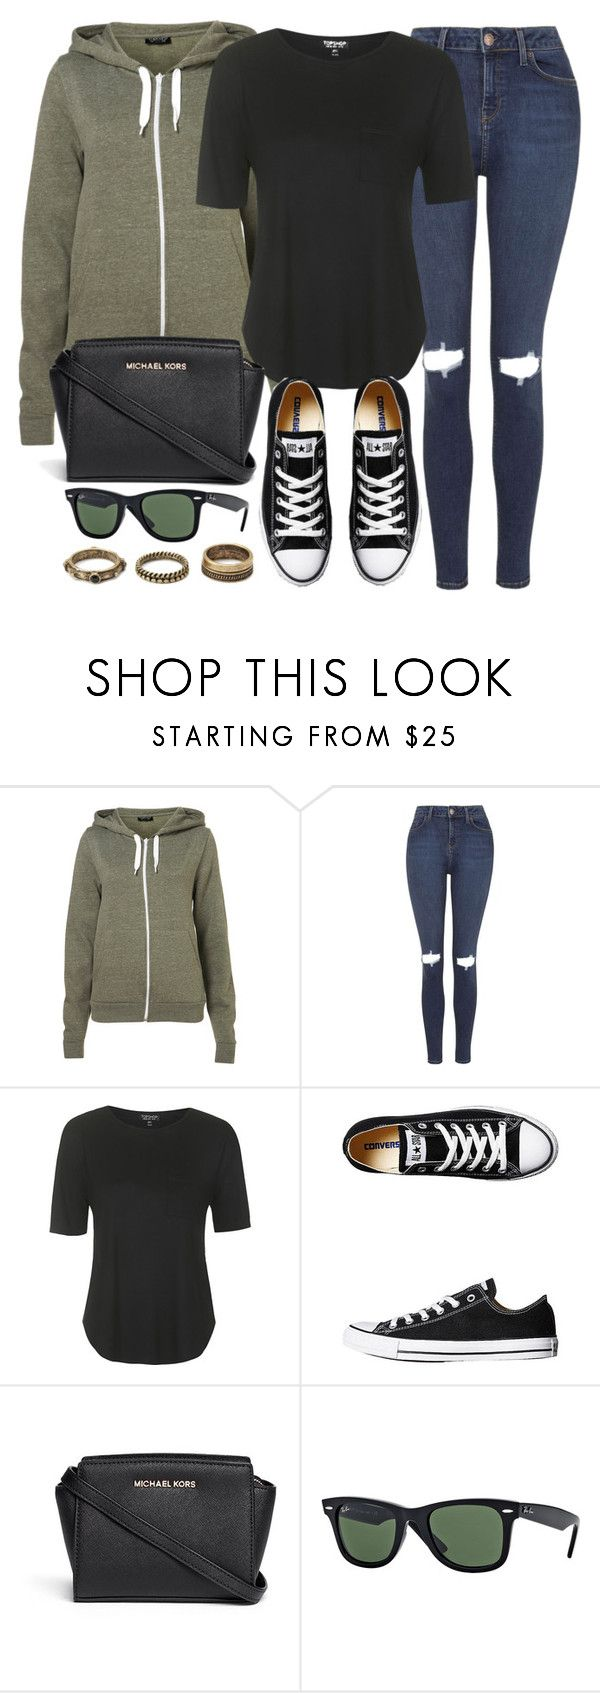 """""""Style #9358"""" by vany-alvarado ❤ liked on Polyvore featuring Topshop, Converse, MICHAEL Michael Kors, Ray-Ban and Forever 21"""